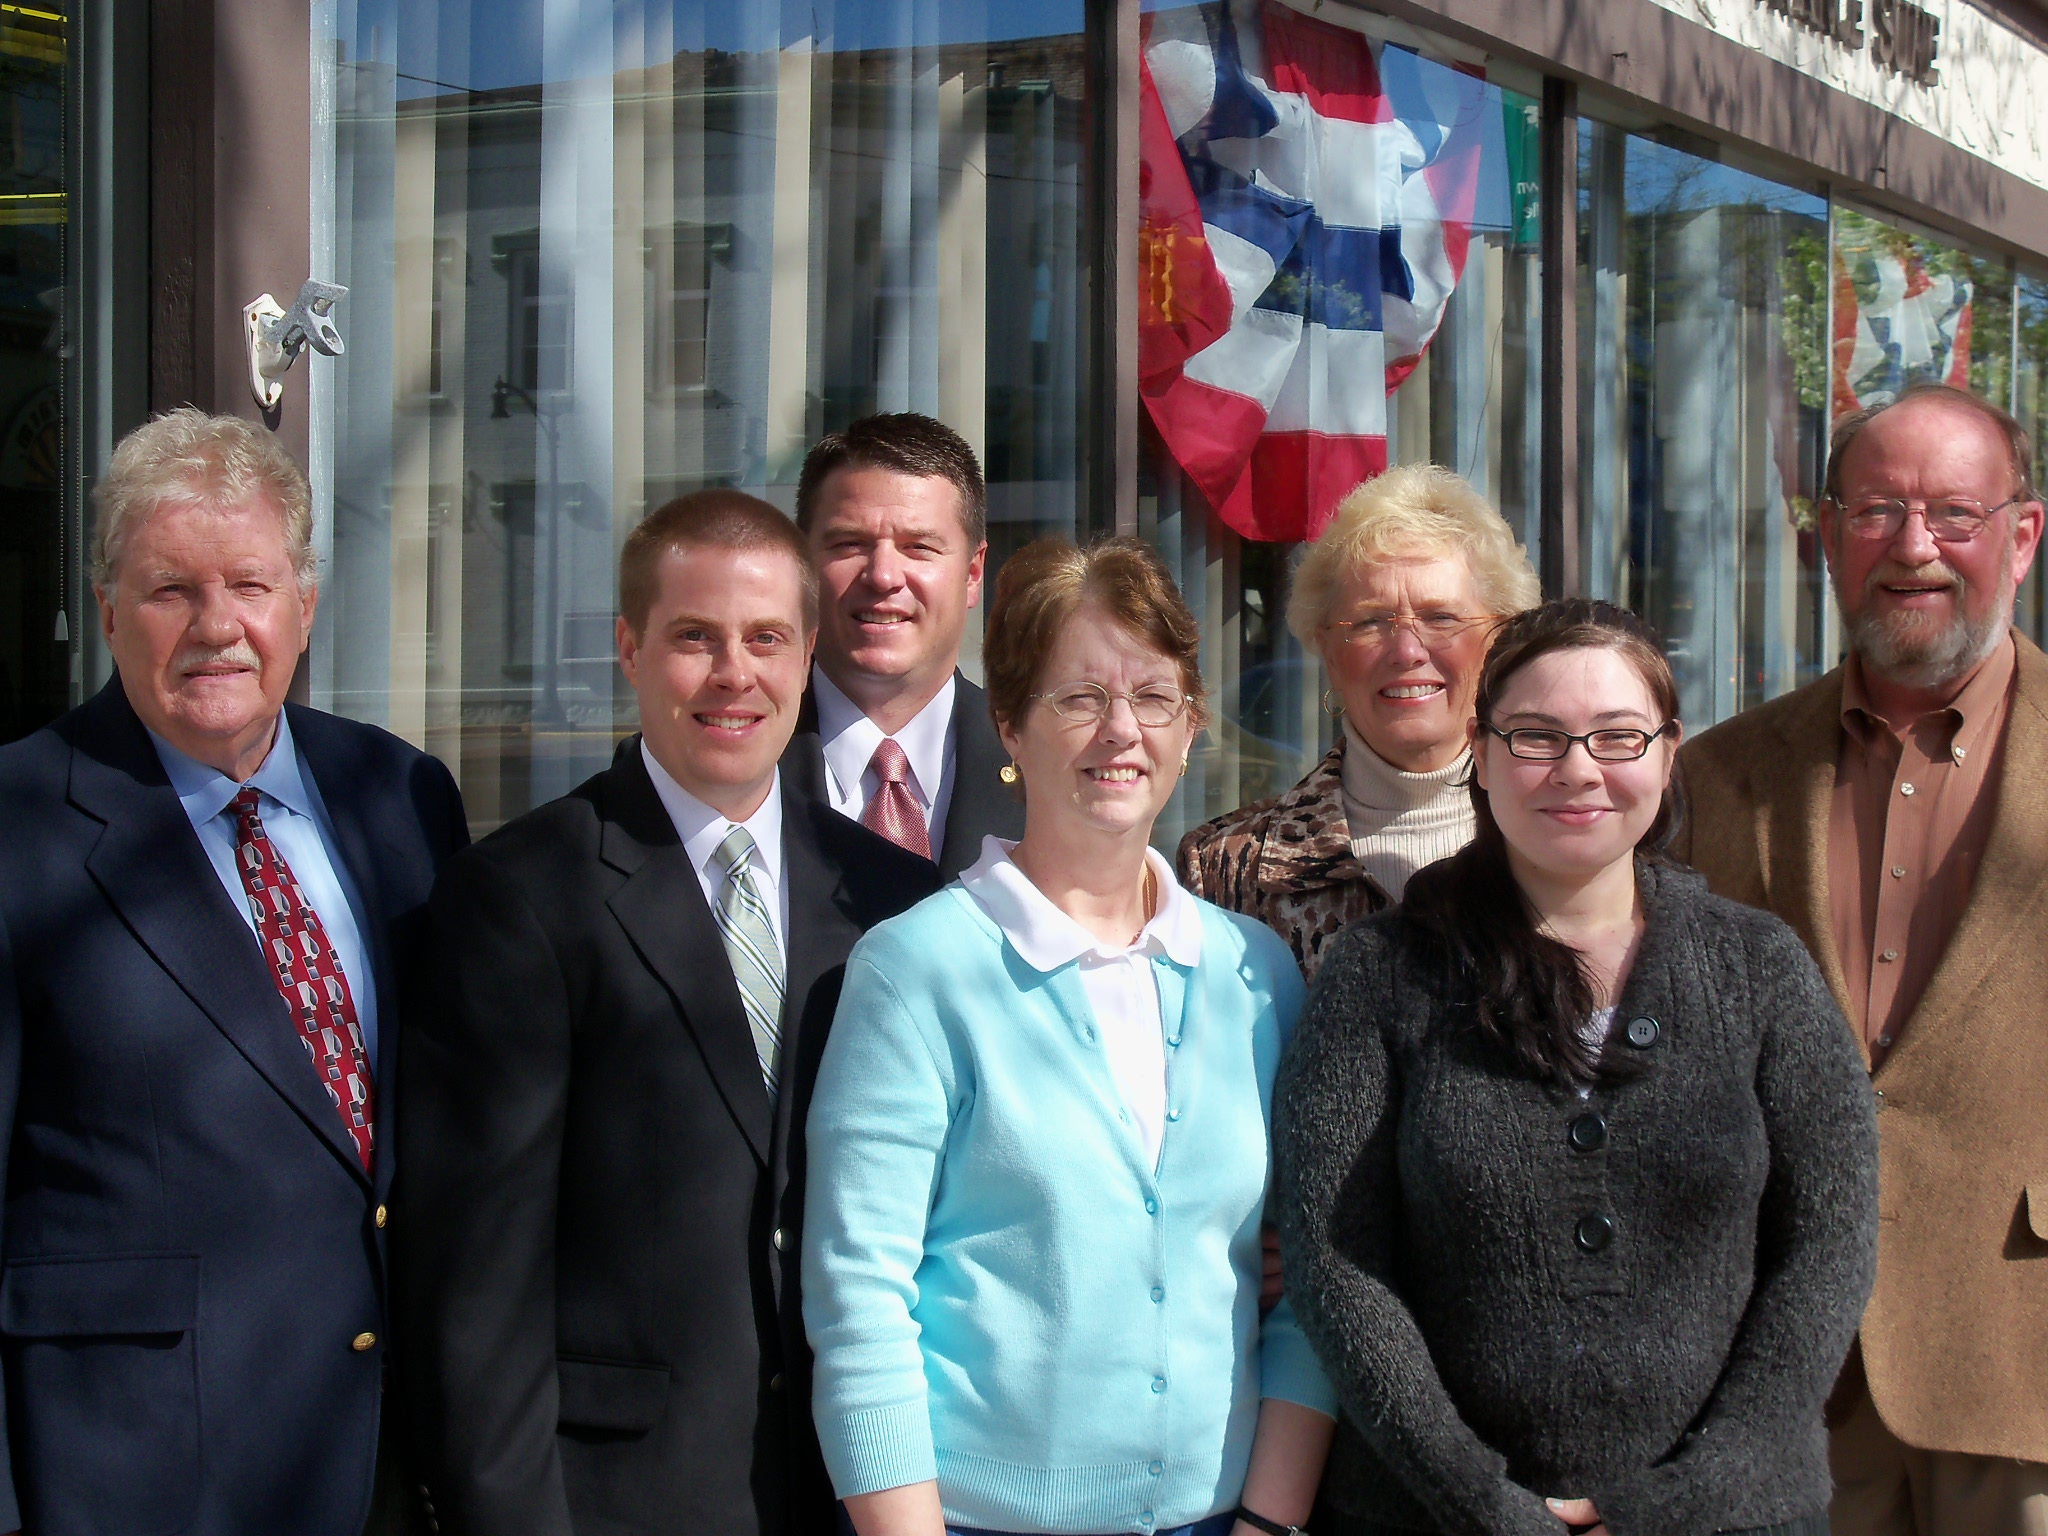 Kemp Insurance, 2011. From left to right: Chuck McDonald, Steve Kemp, Alex Kemp, Shirley Bard, Mary Plank, Samantha Tett, Bill Kemp.